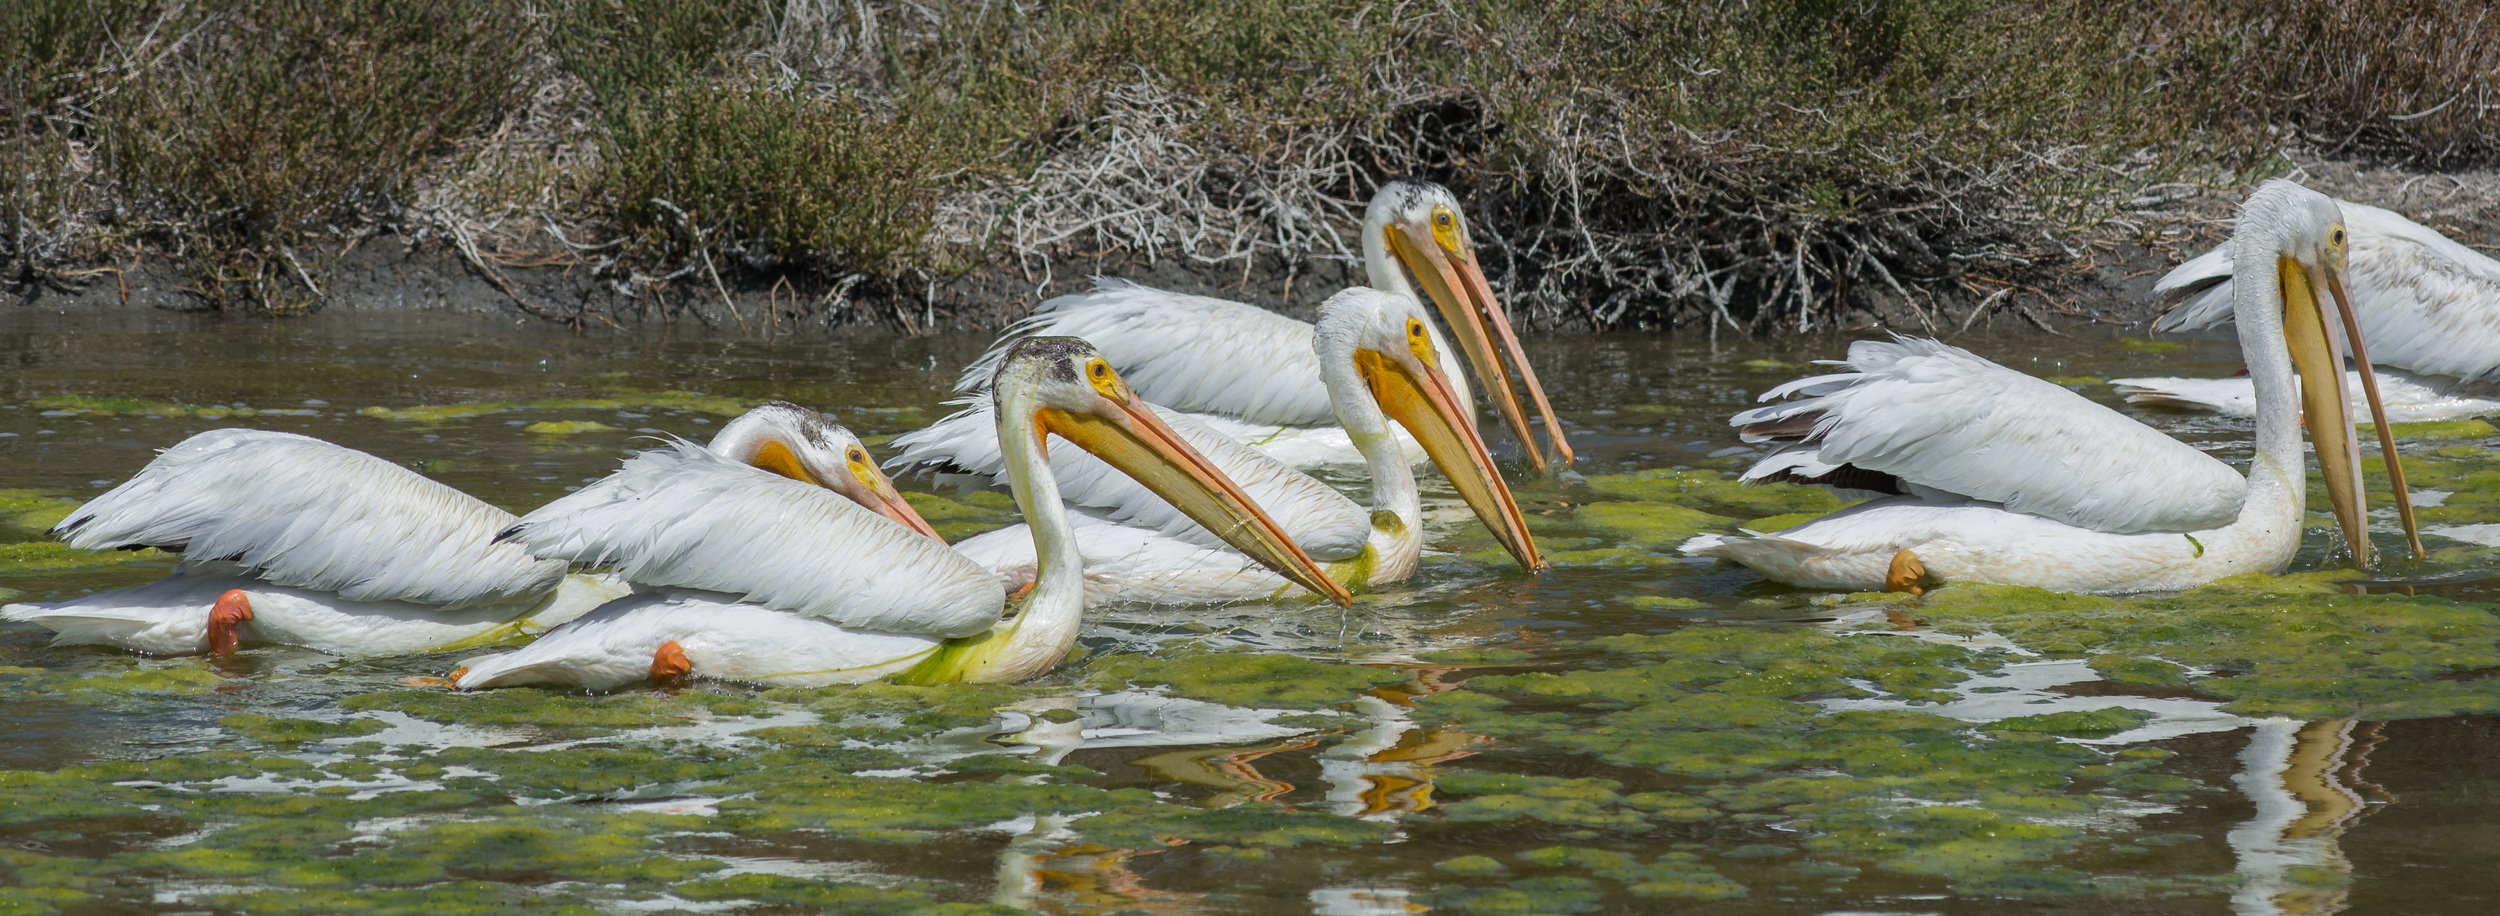 American White Pelican (Pelecanus erythrorhynchos) at Sunnyvale WPCP  EQ: D7100, 300mm f/2.8  Taken: 6-20-2015 at 10:41   Settings: 450mm (35mm eqiv), 1/1600s, f/5.0, ISO200, +2/3EV  Conditions: Sunny